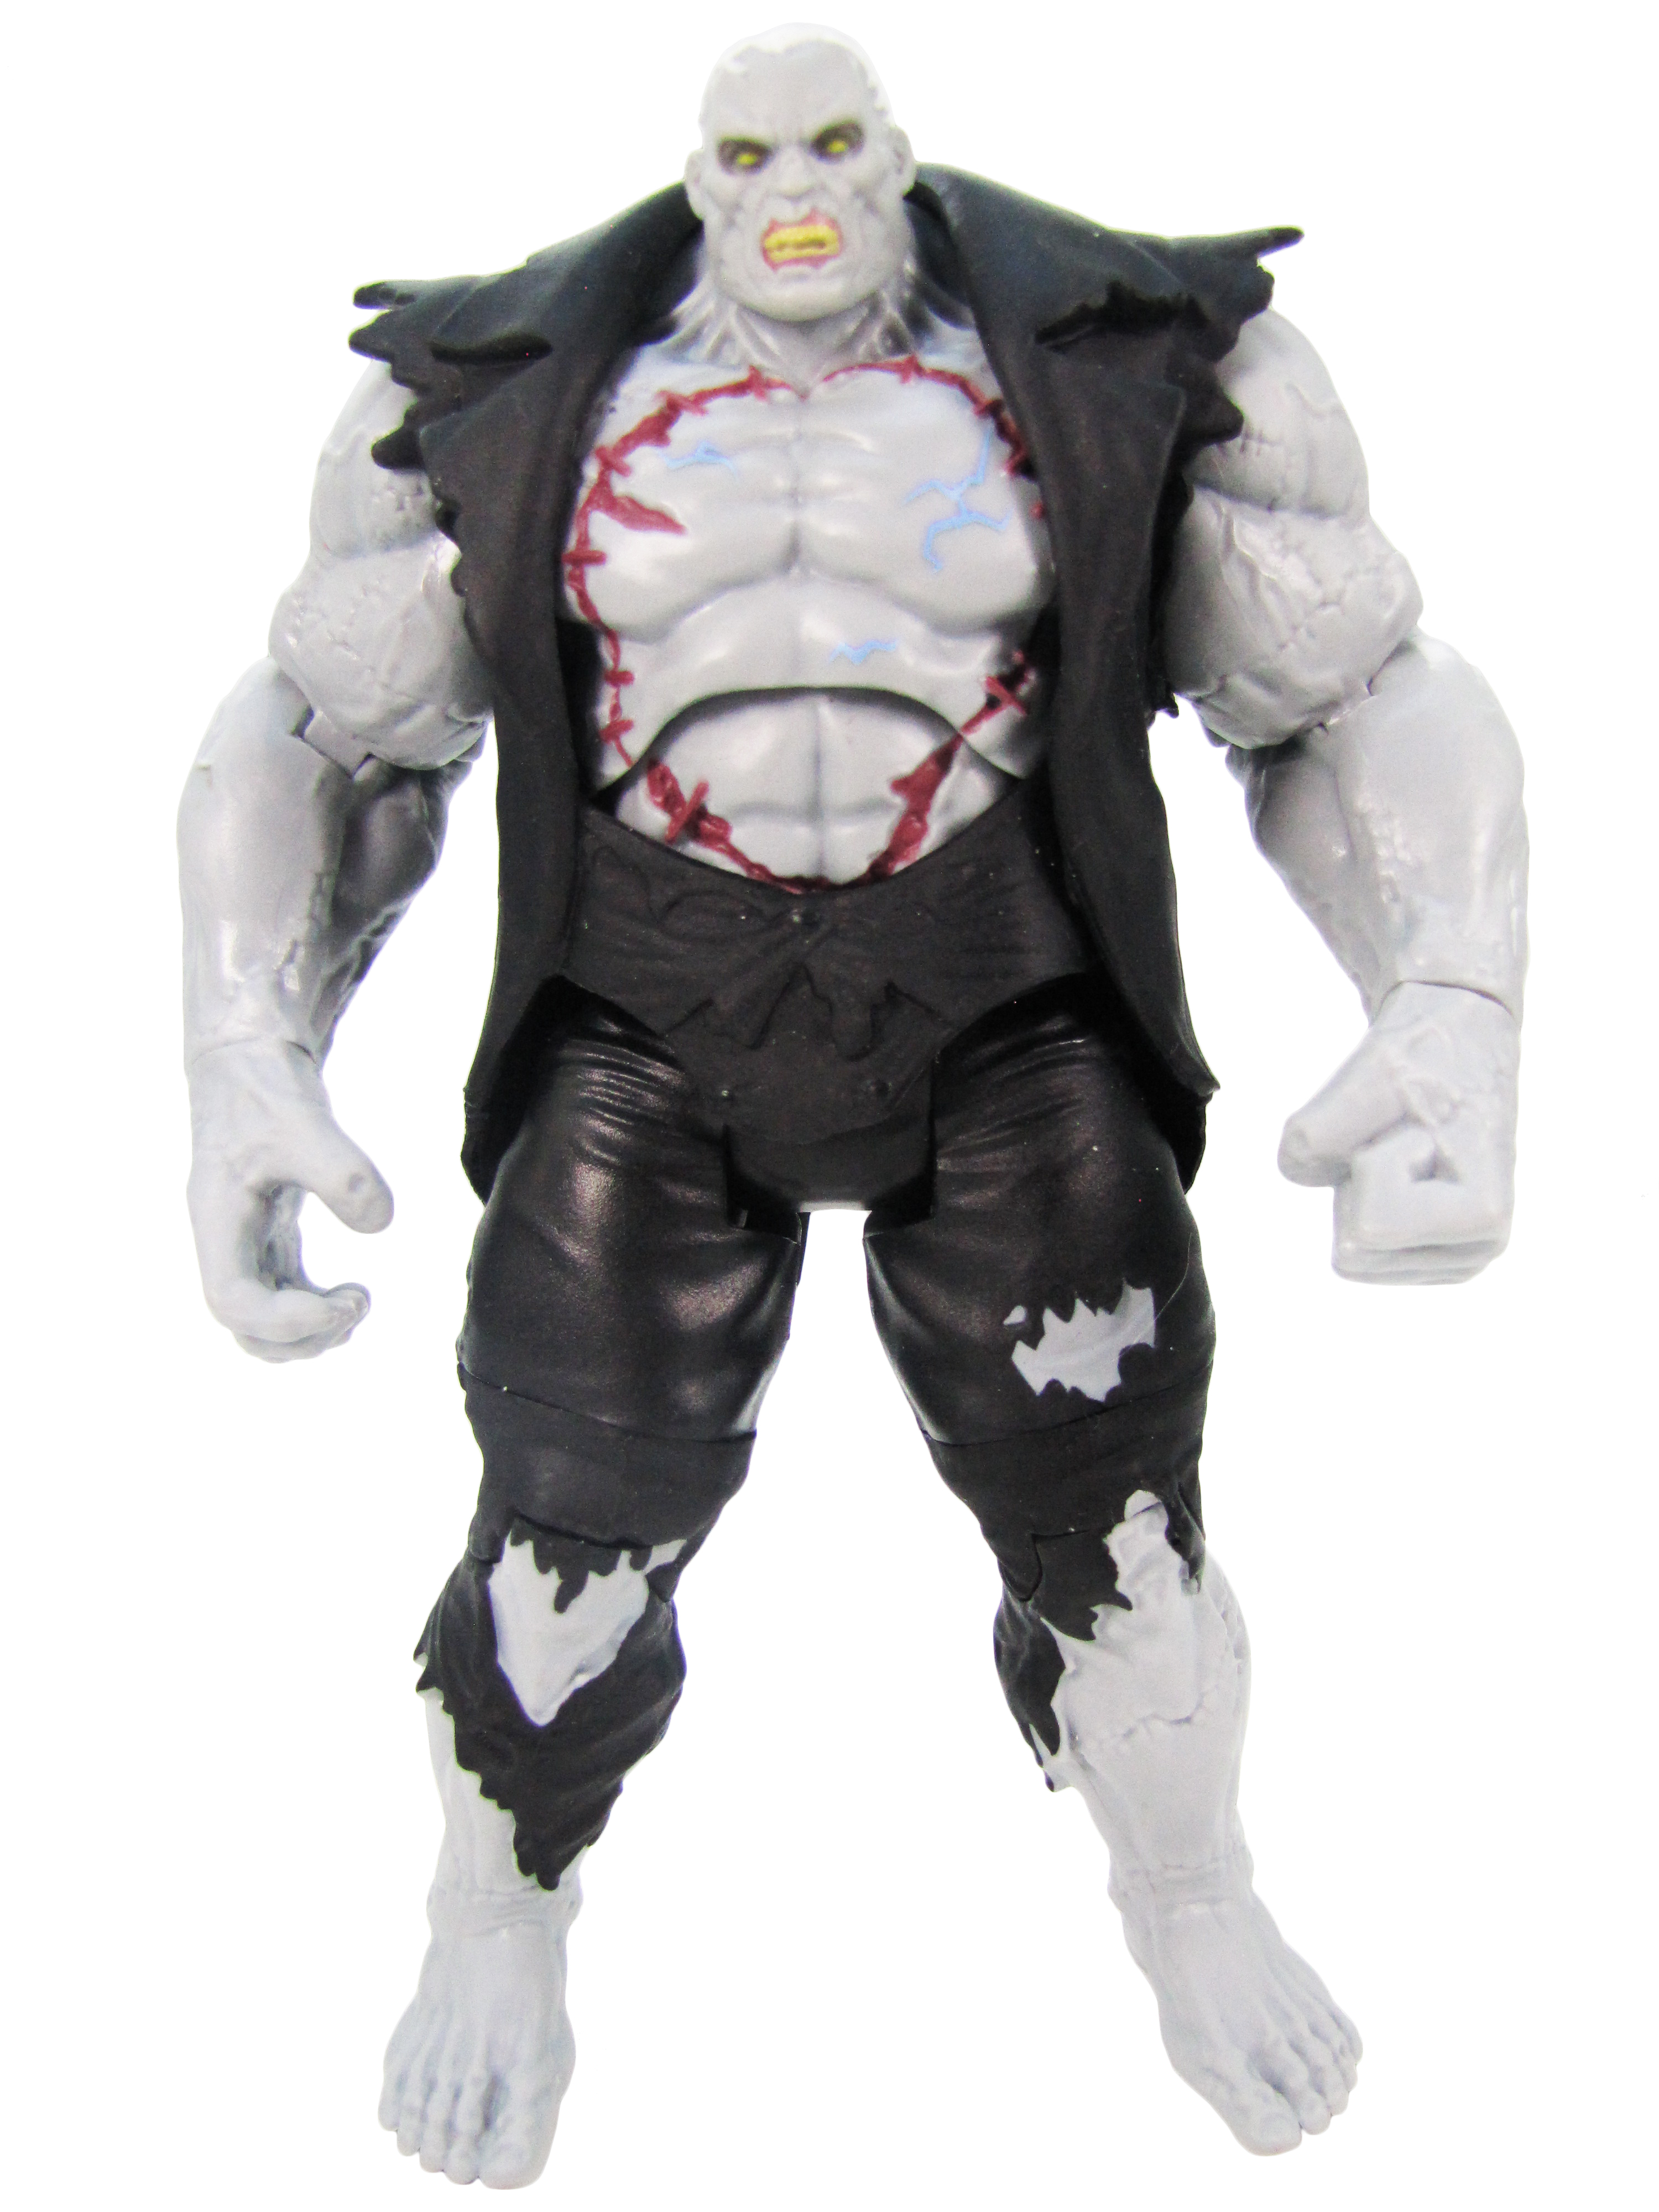 2014 Mattel DC Comics Multiverse Batman Arkham City SOLOMON GRUNDY Mint